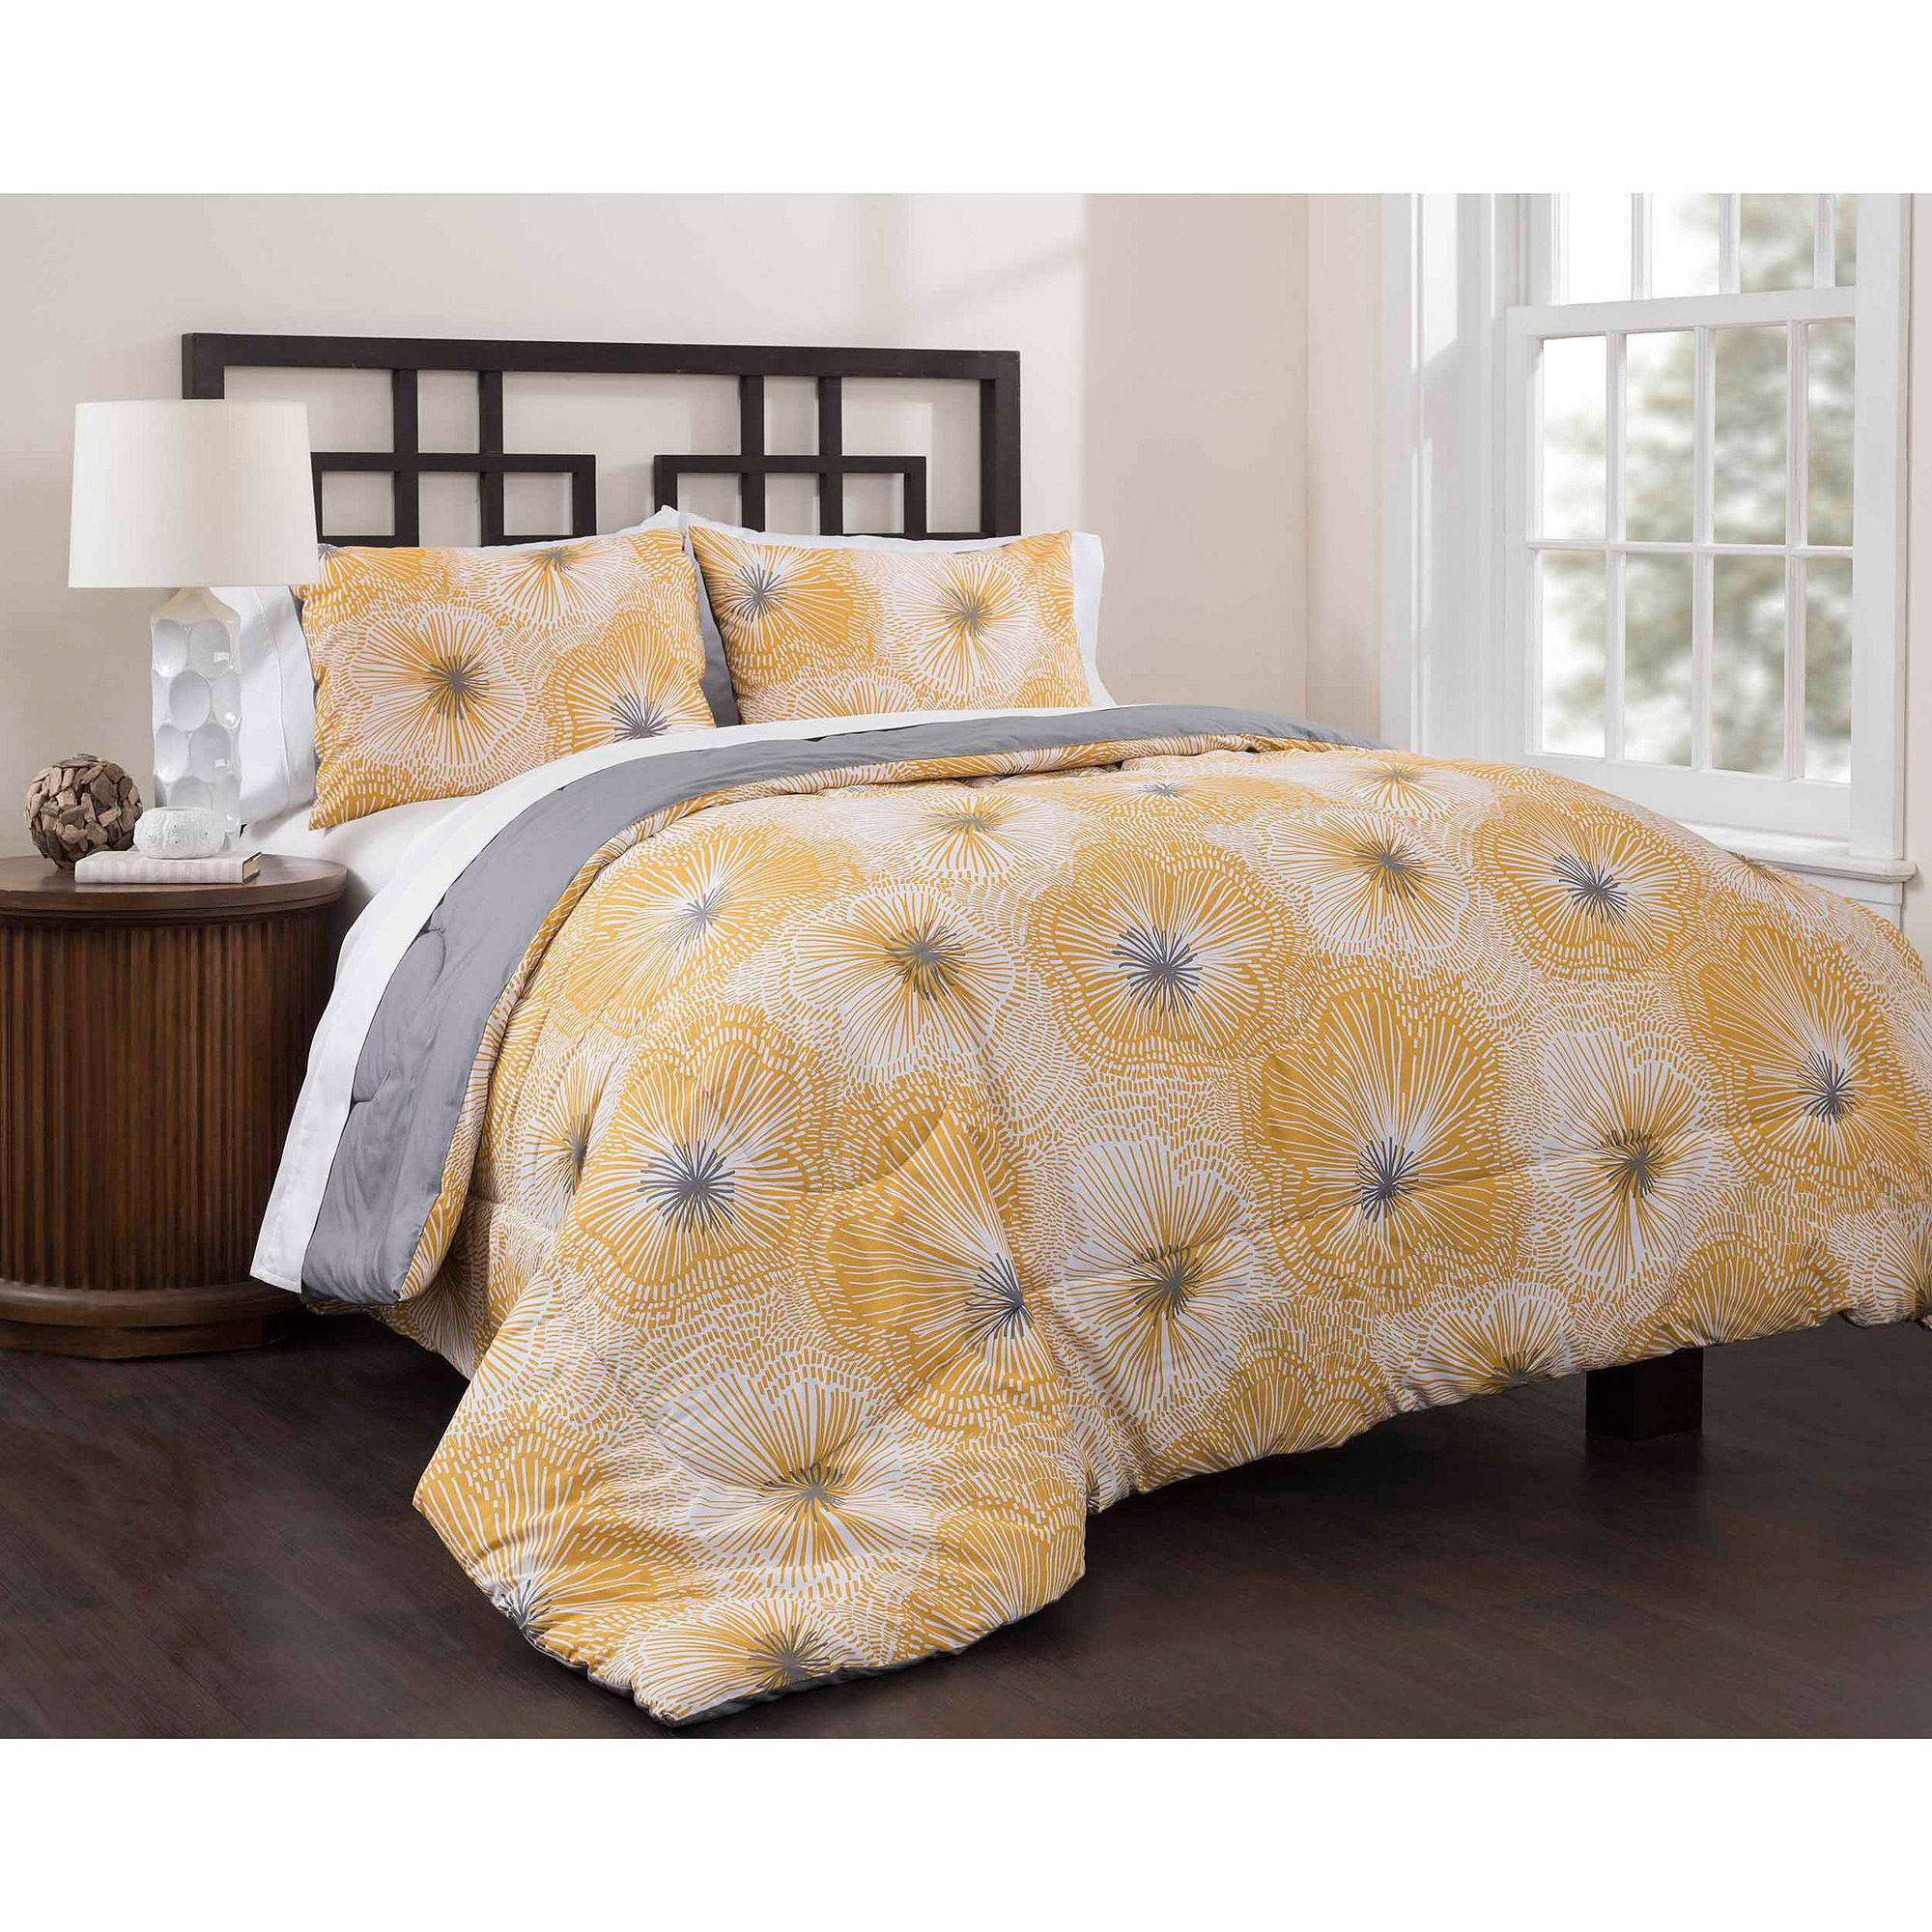 East End Living Lily Impressions 3-Piece Bedding Duvet Set, Yellow